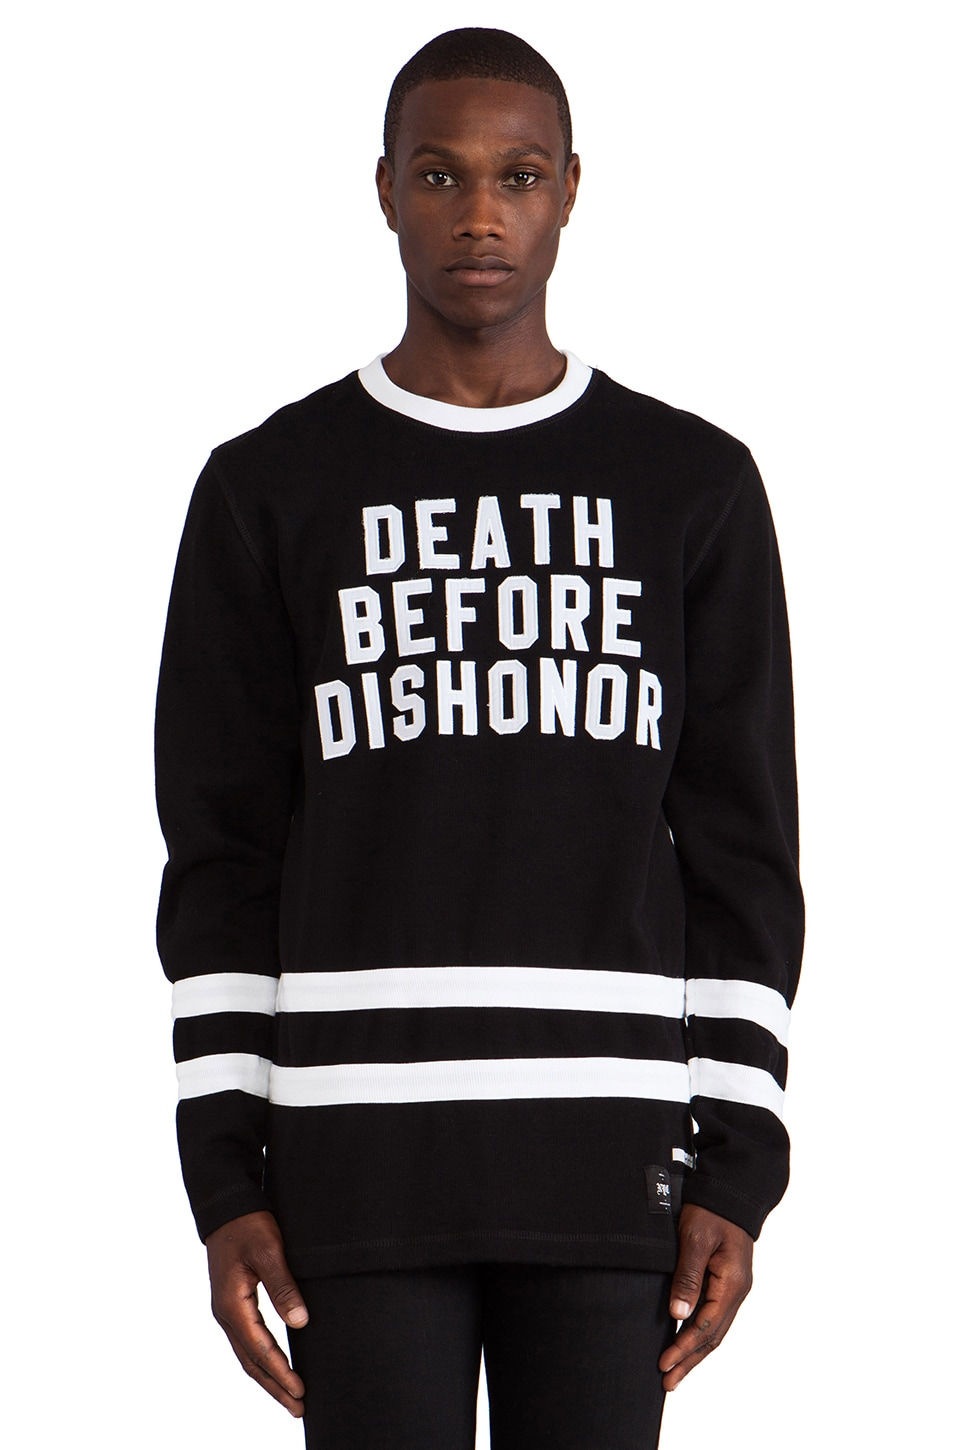 40 OZ NY Death Before Dishonor in Black